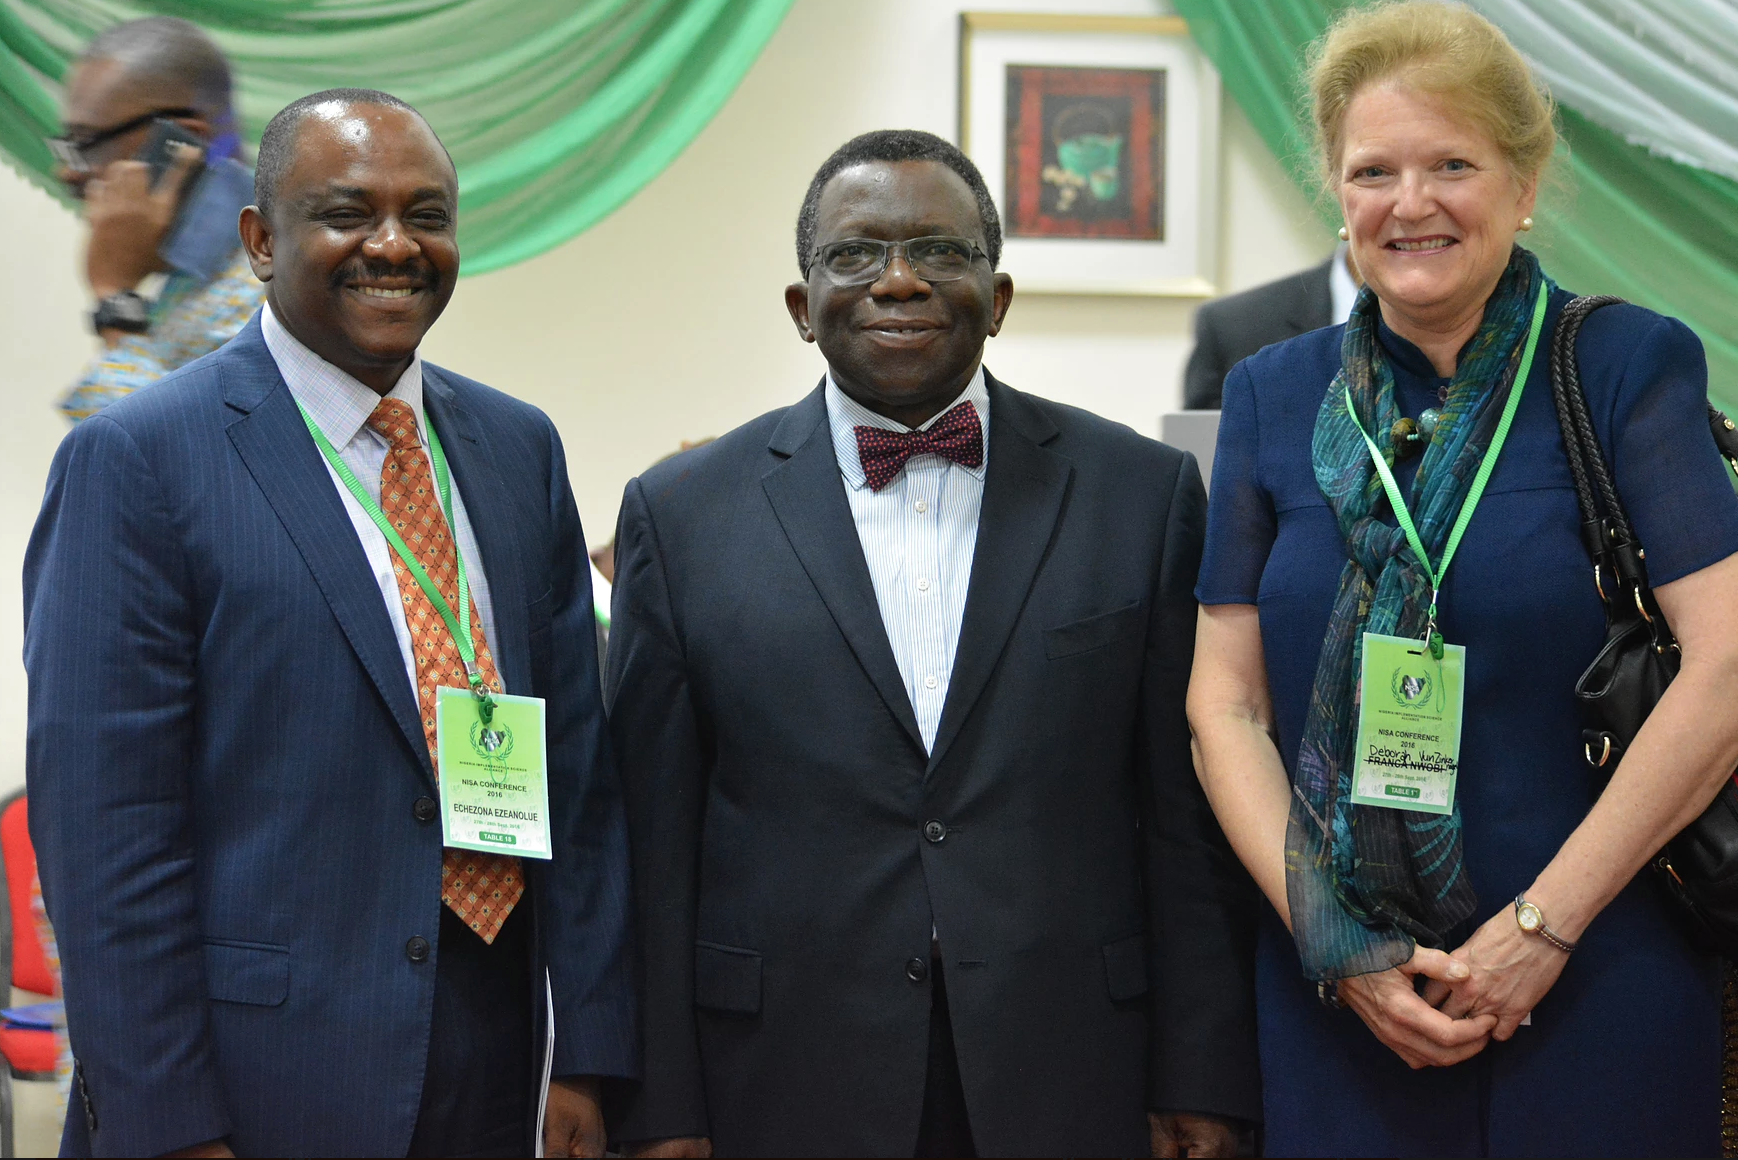 Dr. Echezona Ezeanolue with Nigeria Minister of Health and UNAIDS Staff.